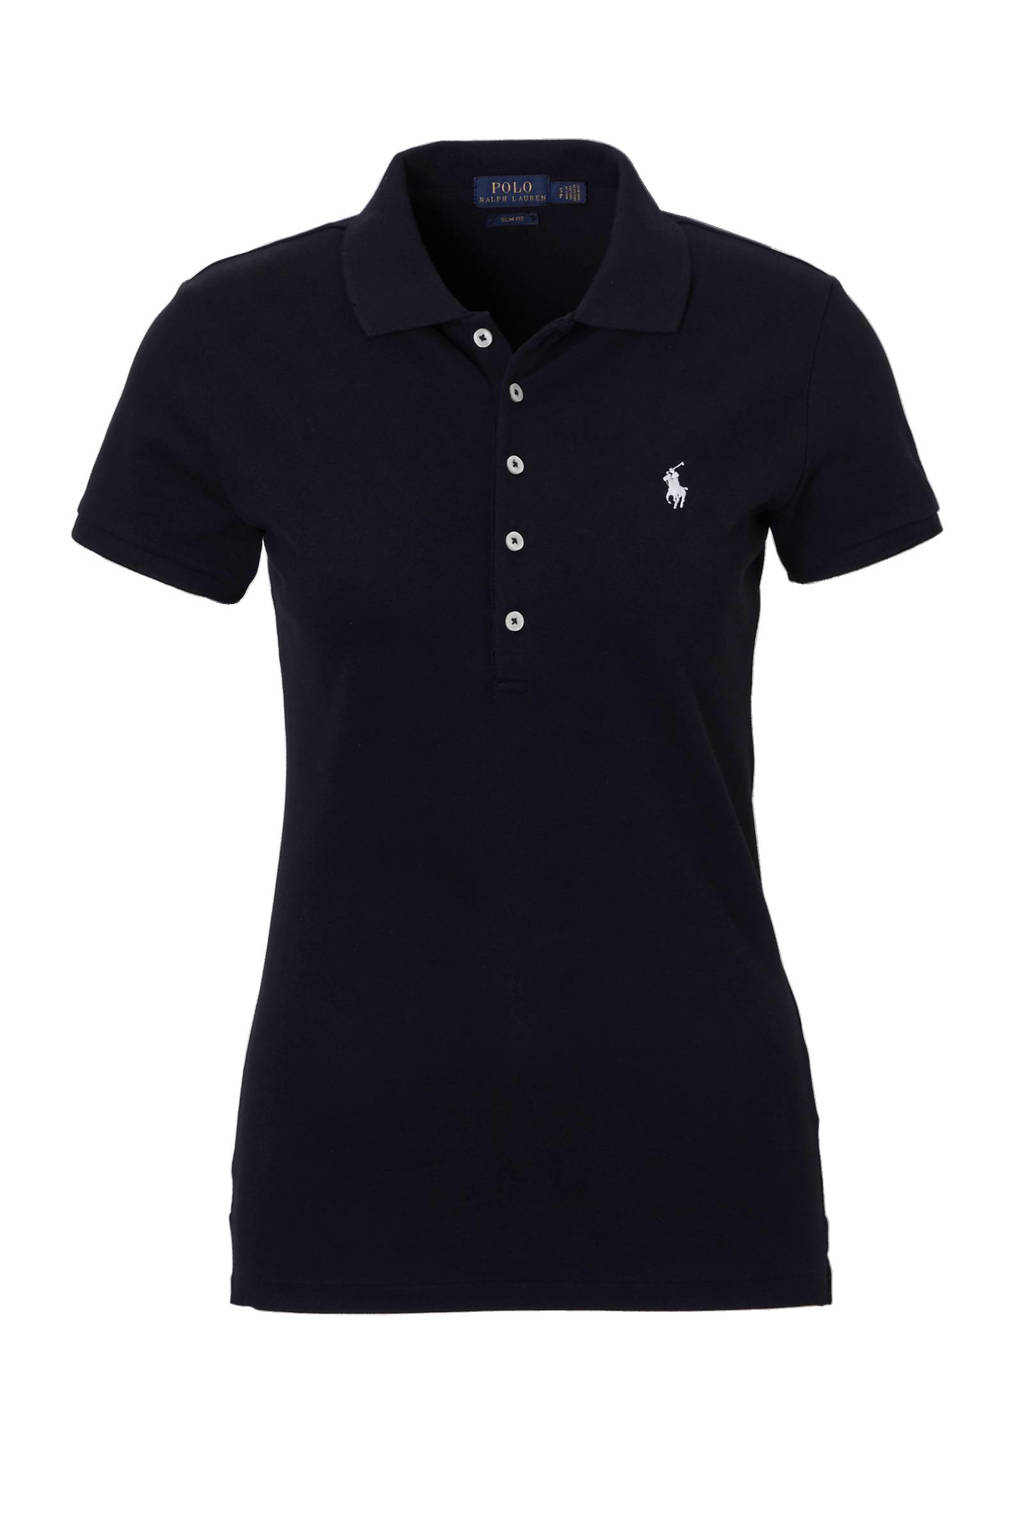 POLO Ralph Lauren slim fit polo, Zwart/wit